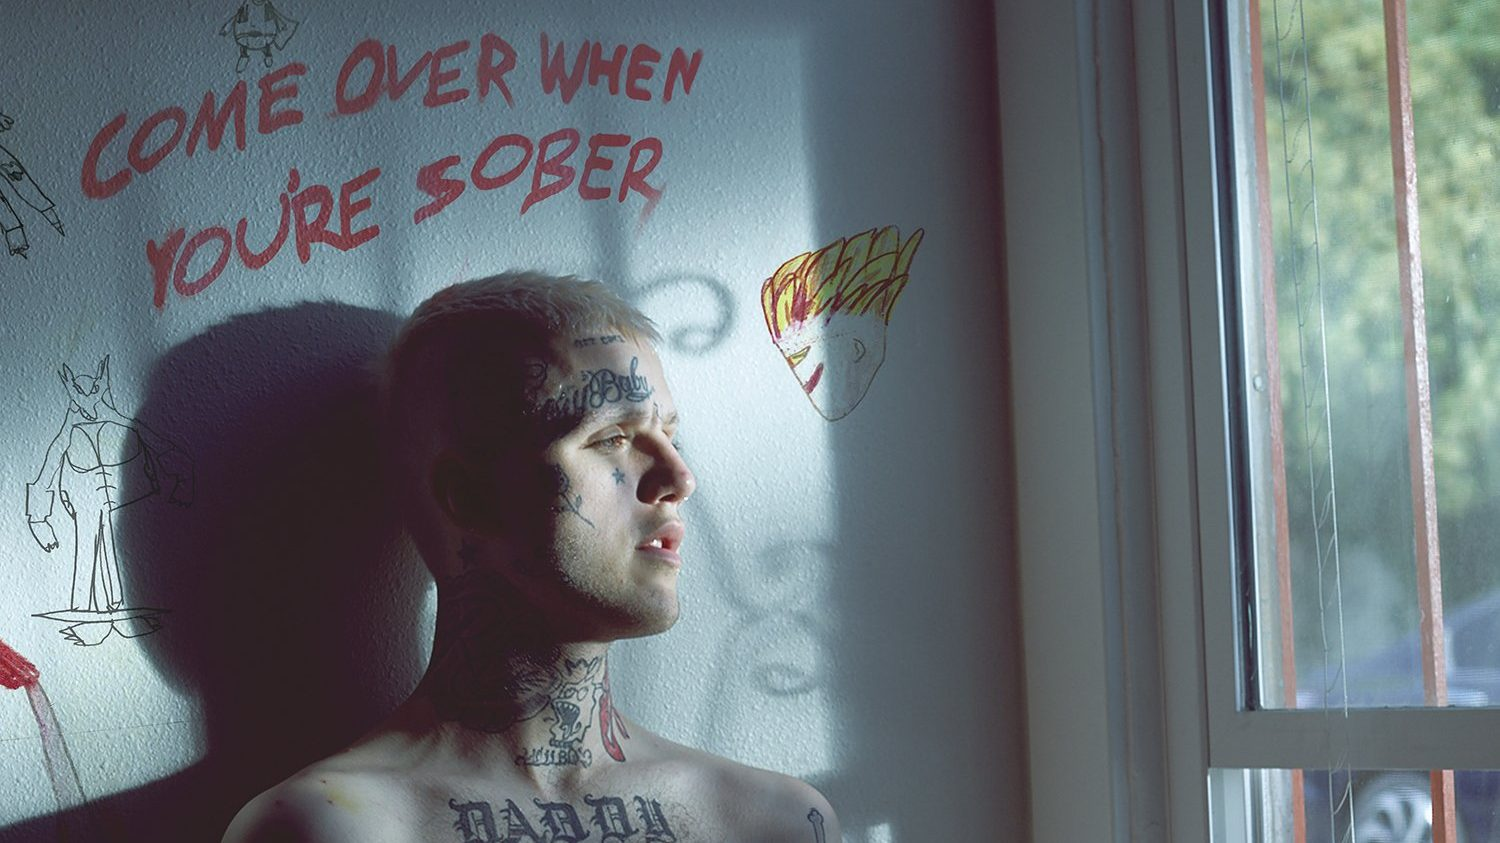 come over when you're sober